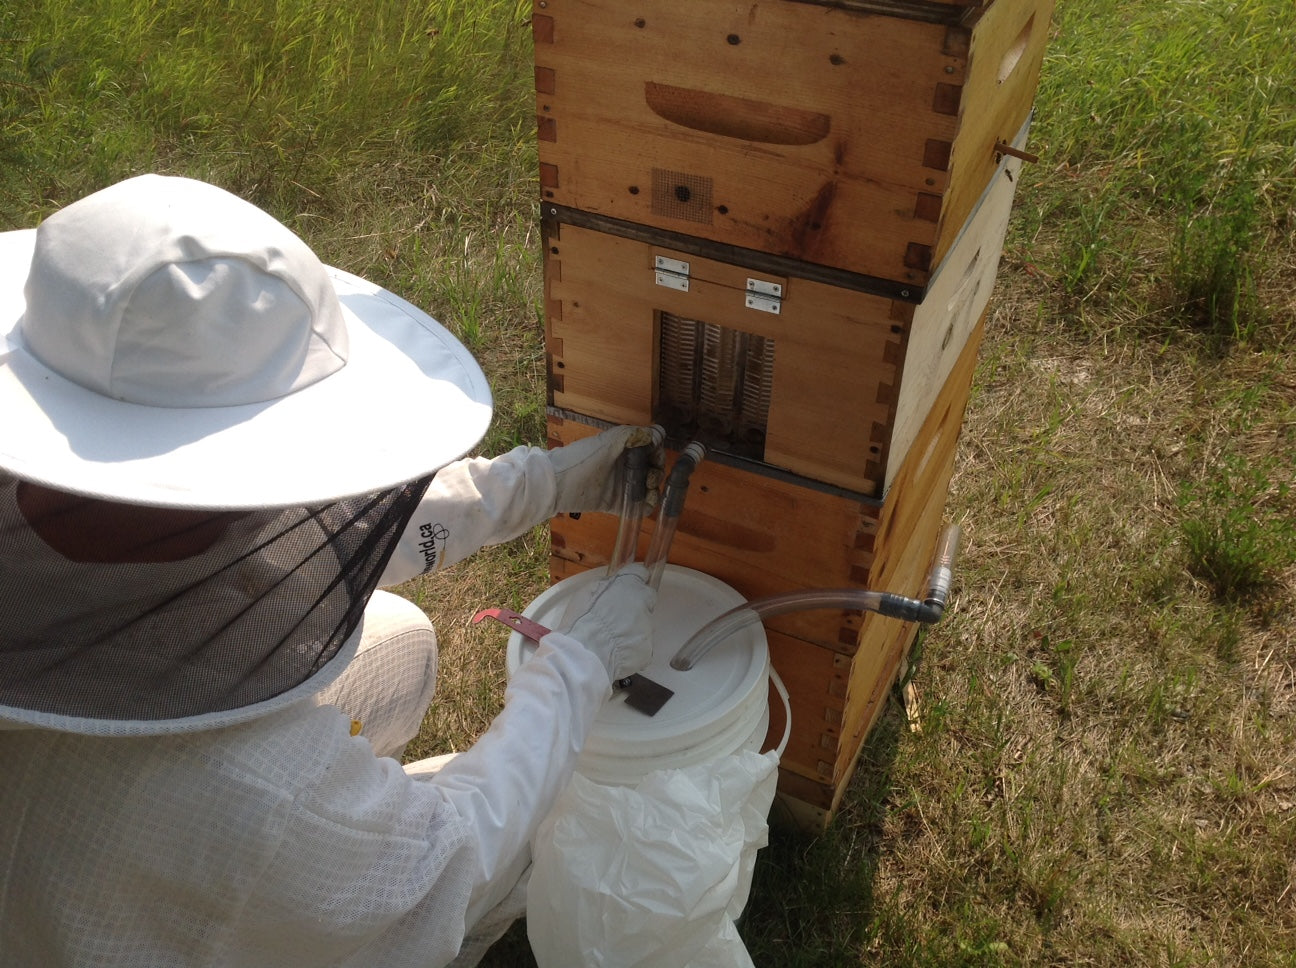 Removing auto-extract and comb honey from your hive